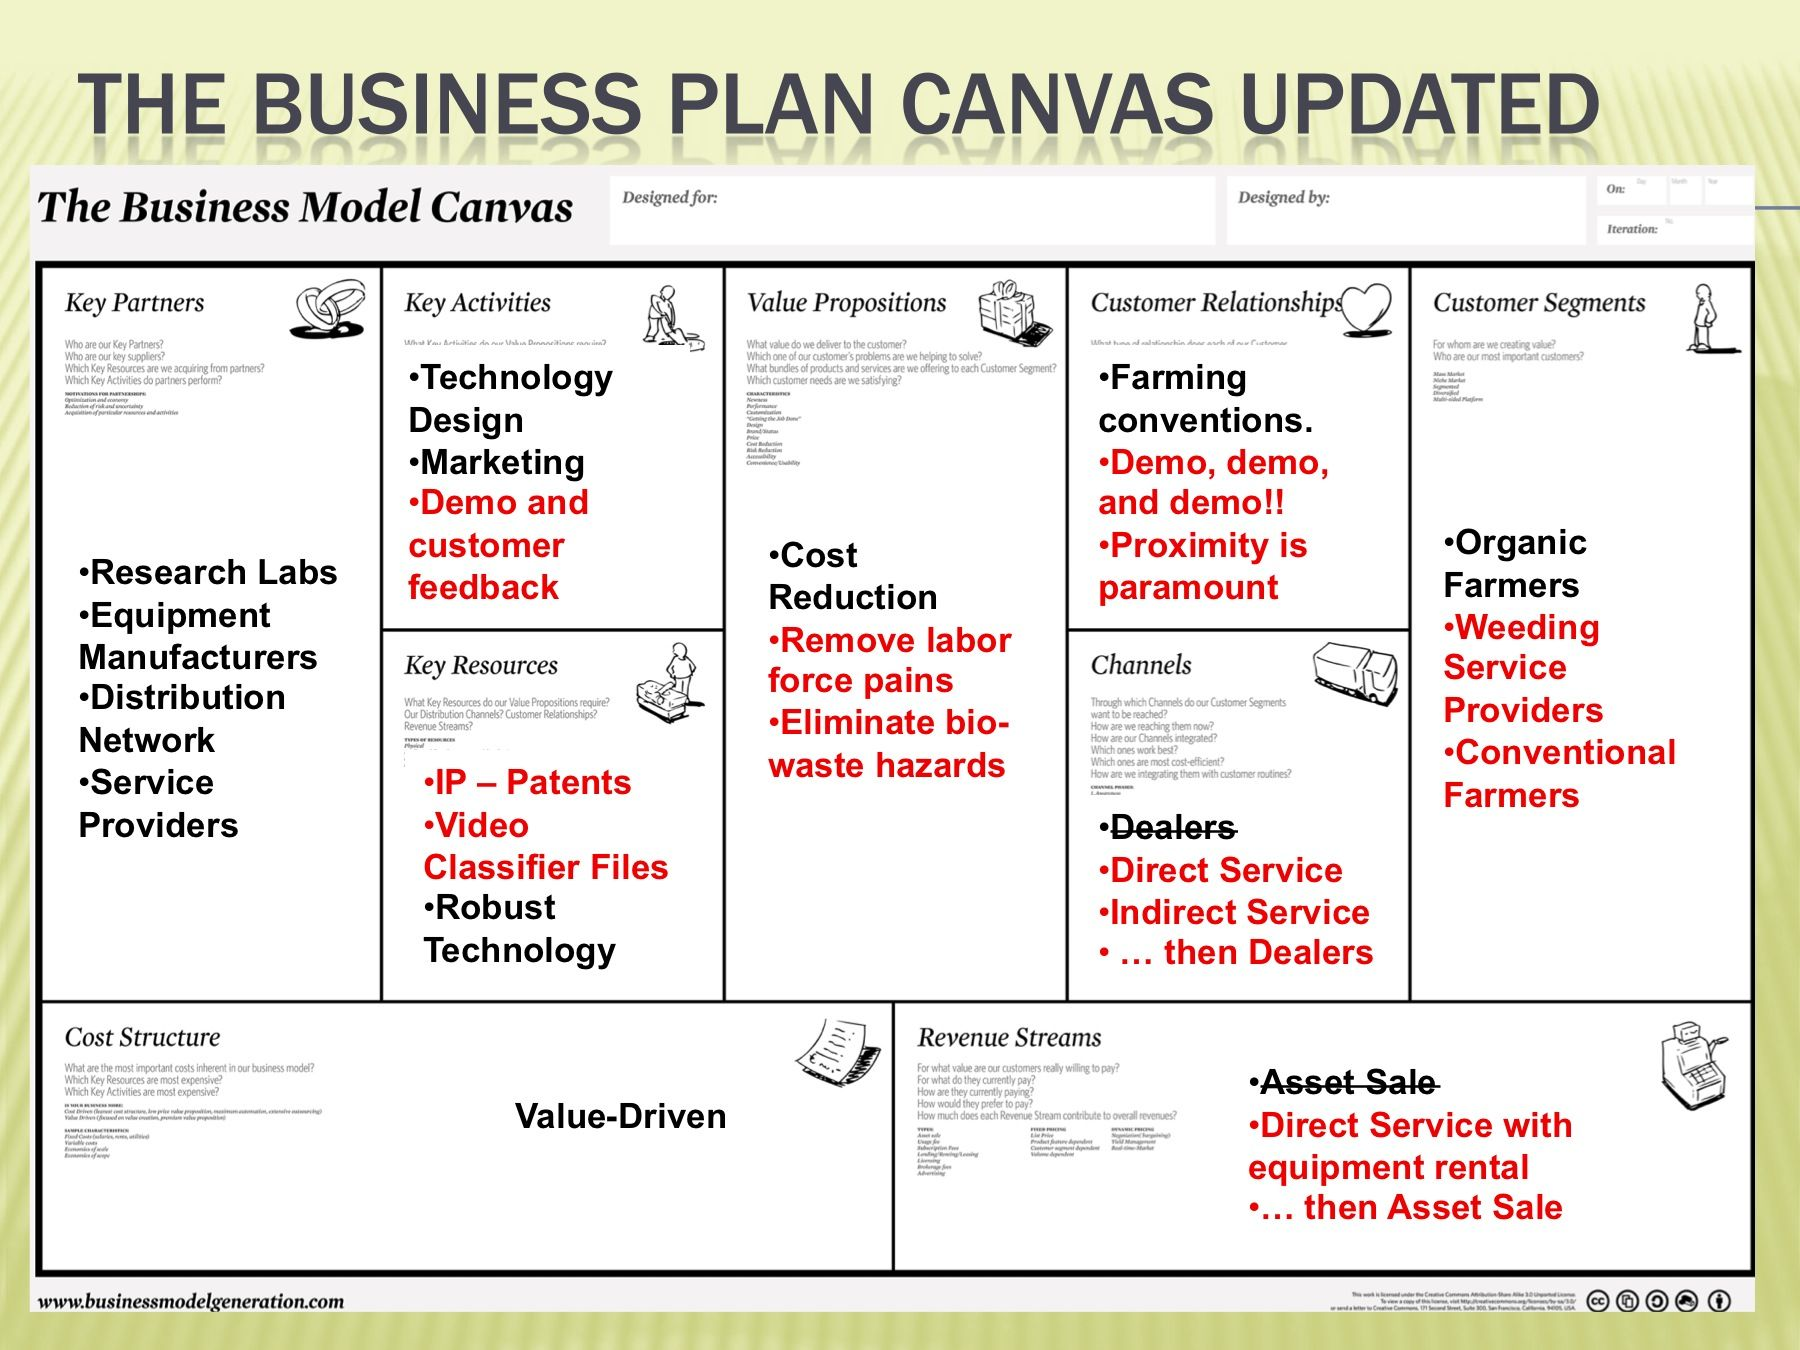 Business Model Canvas Research Laboratory